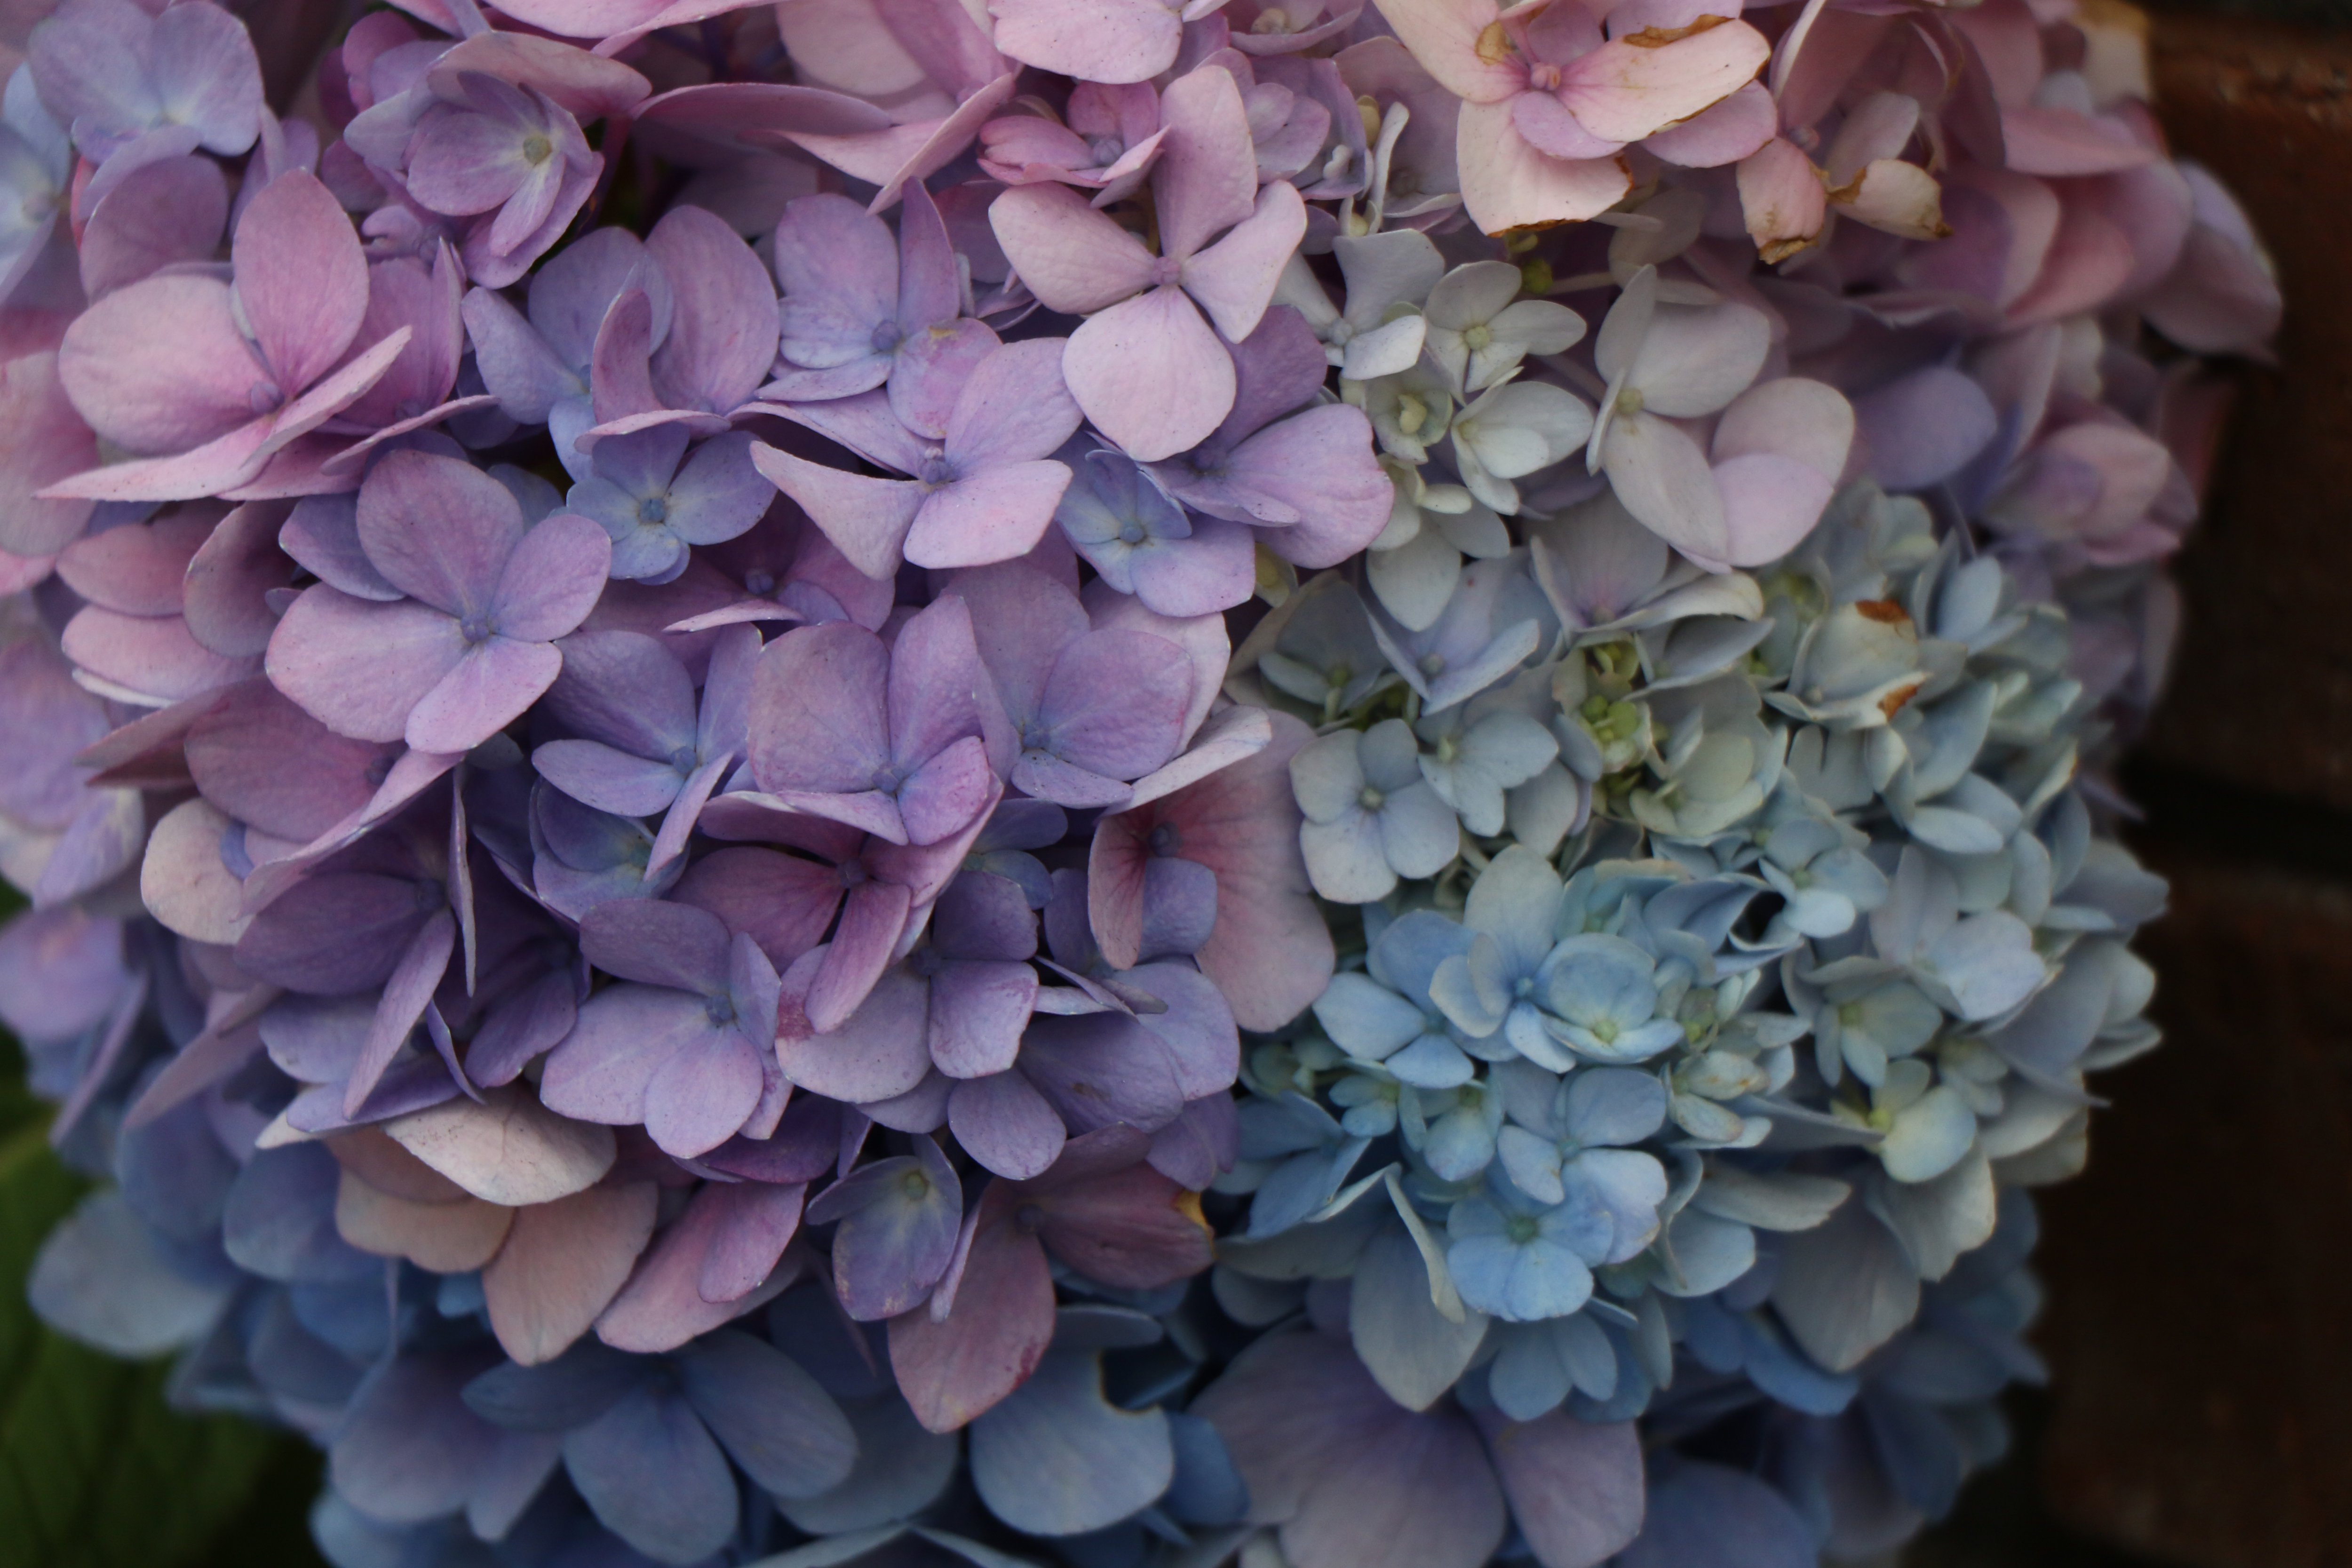 A sample photo of hydrangea taken by the Canon EOS 7D Mark II.